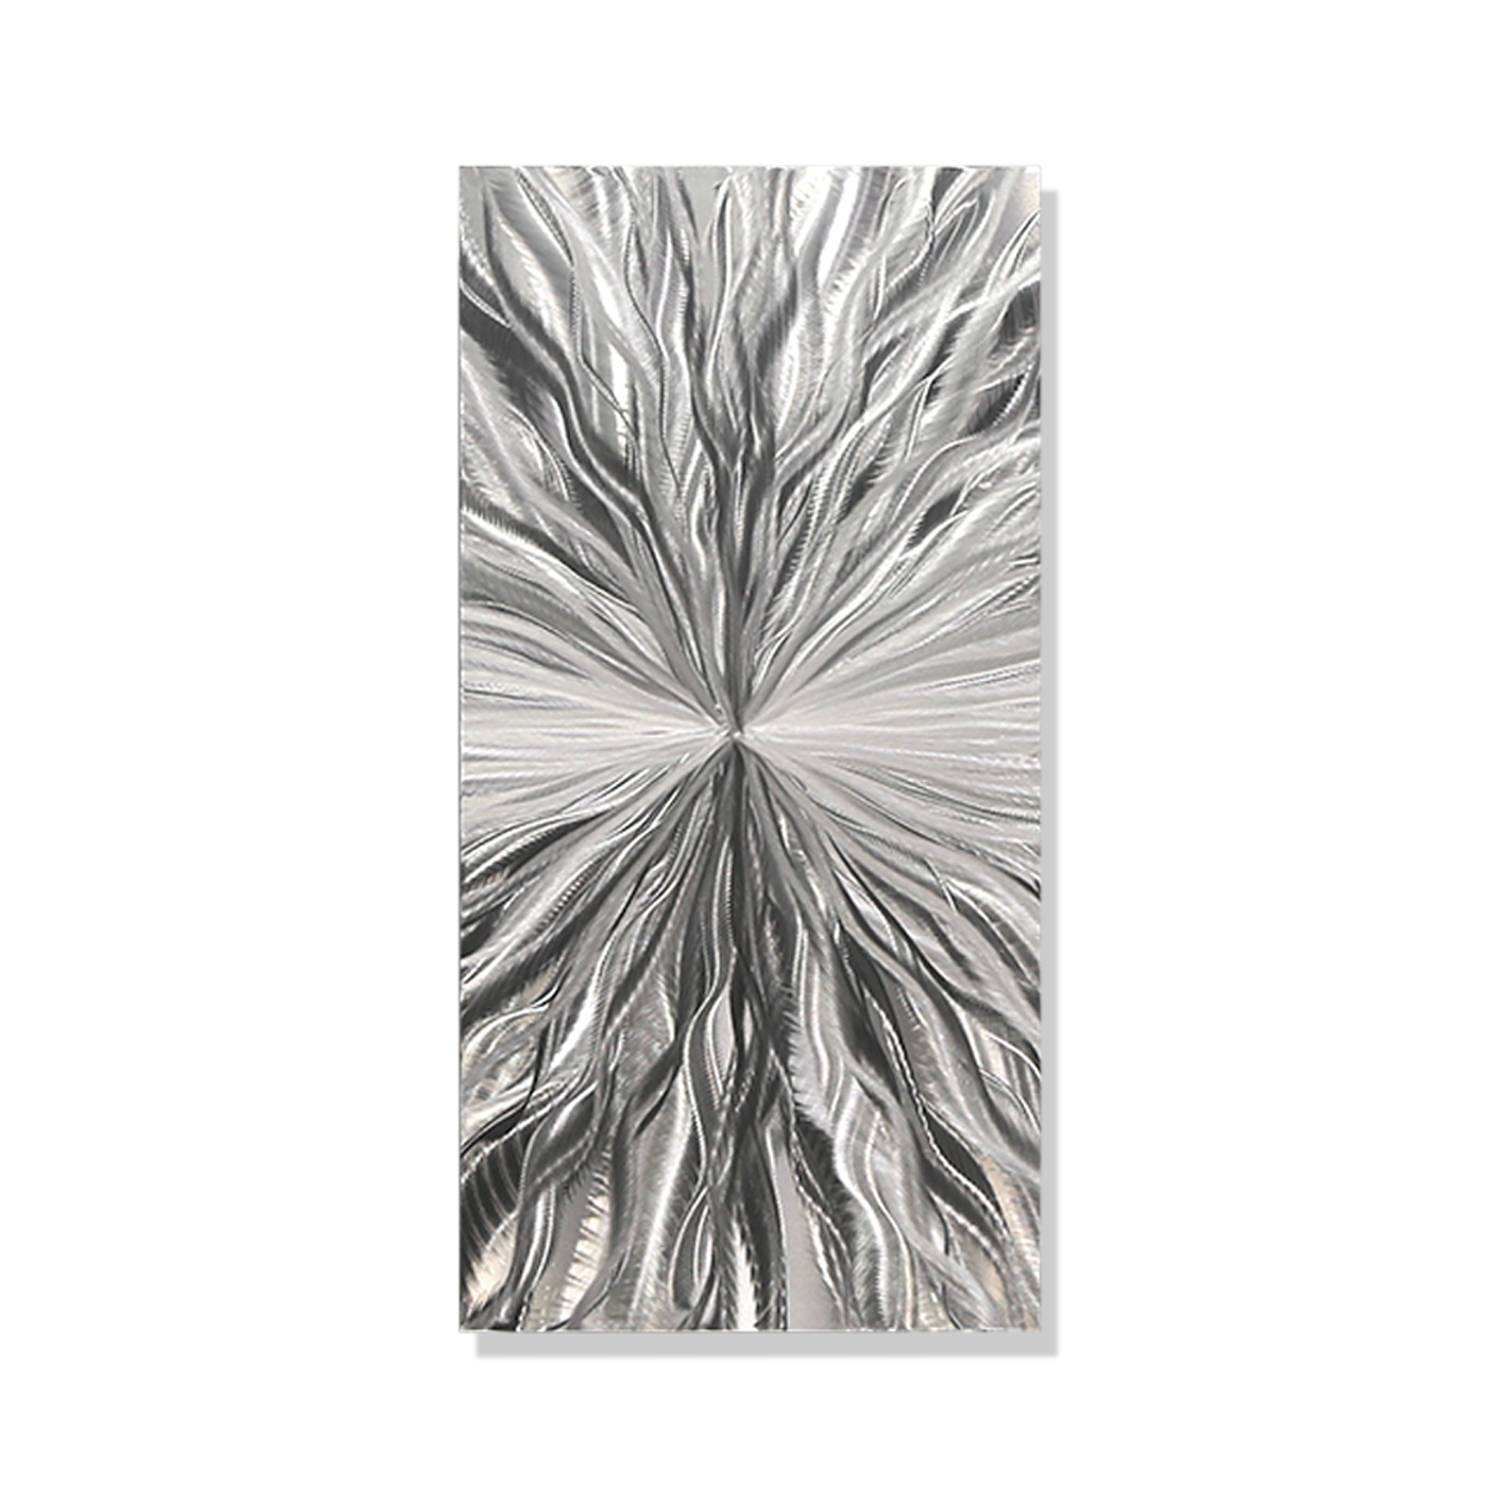 Vitality Solo - Silver Metal Wall Art - Single Panel Wall Décor regarding Most Up-to-Date Silver Metal Wall Art